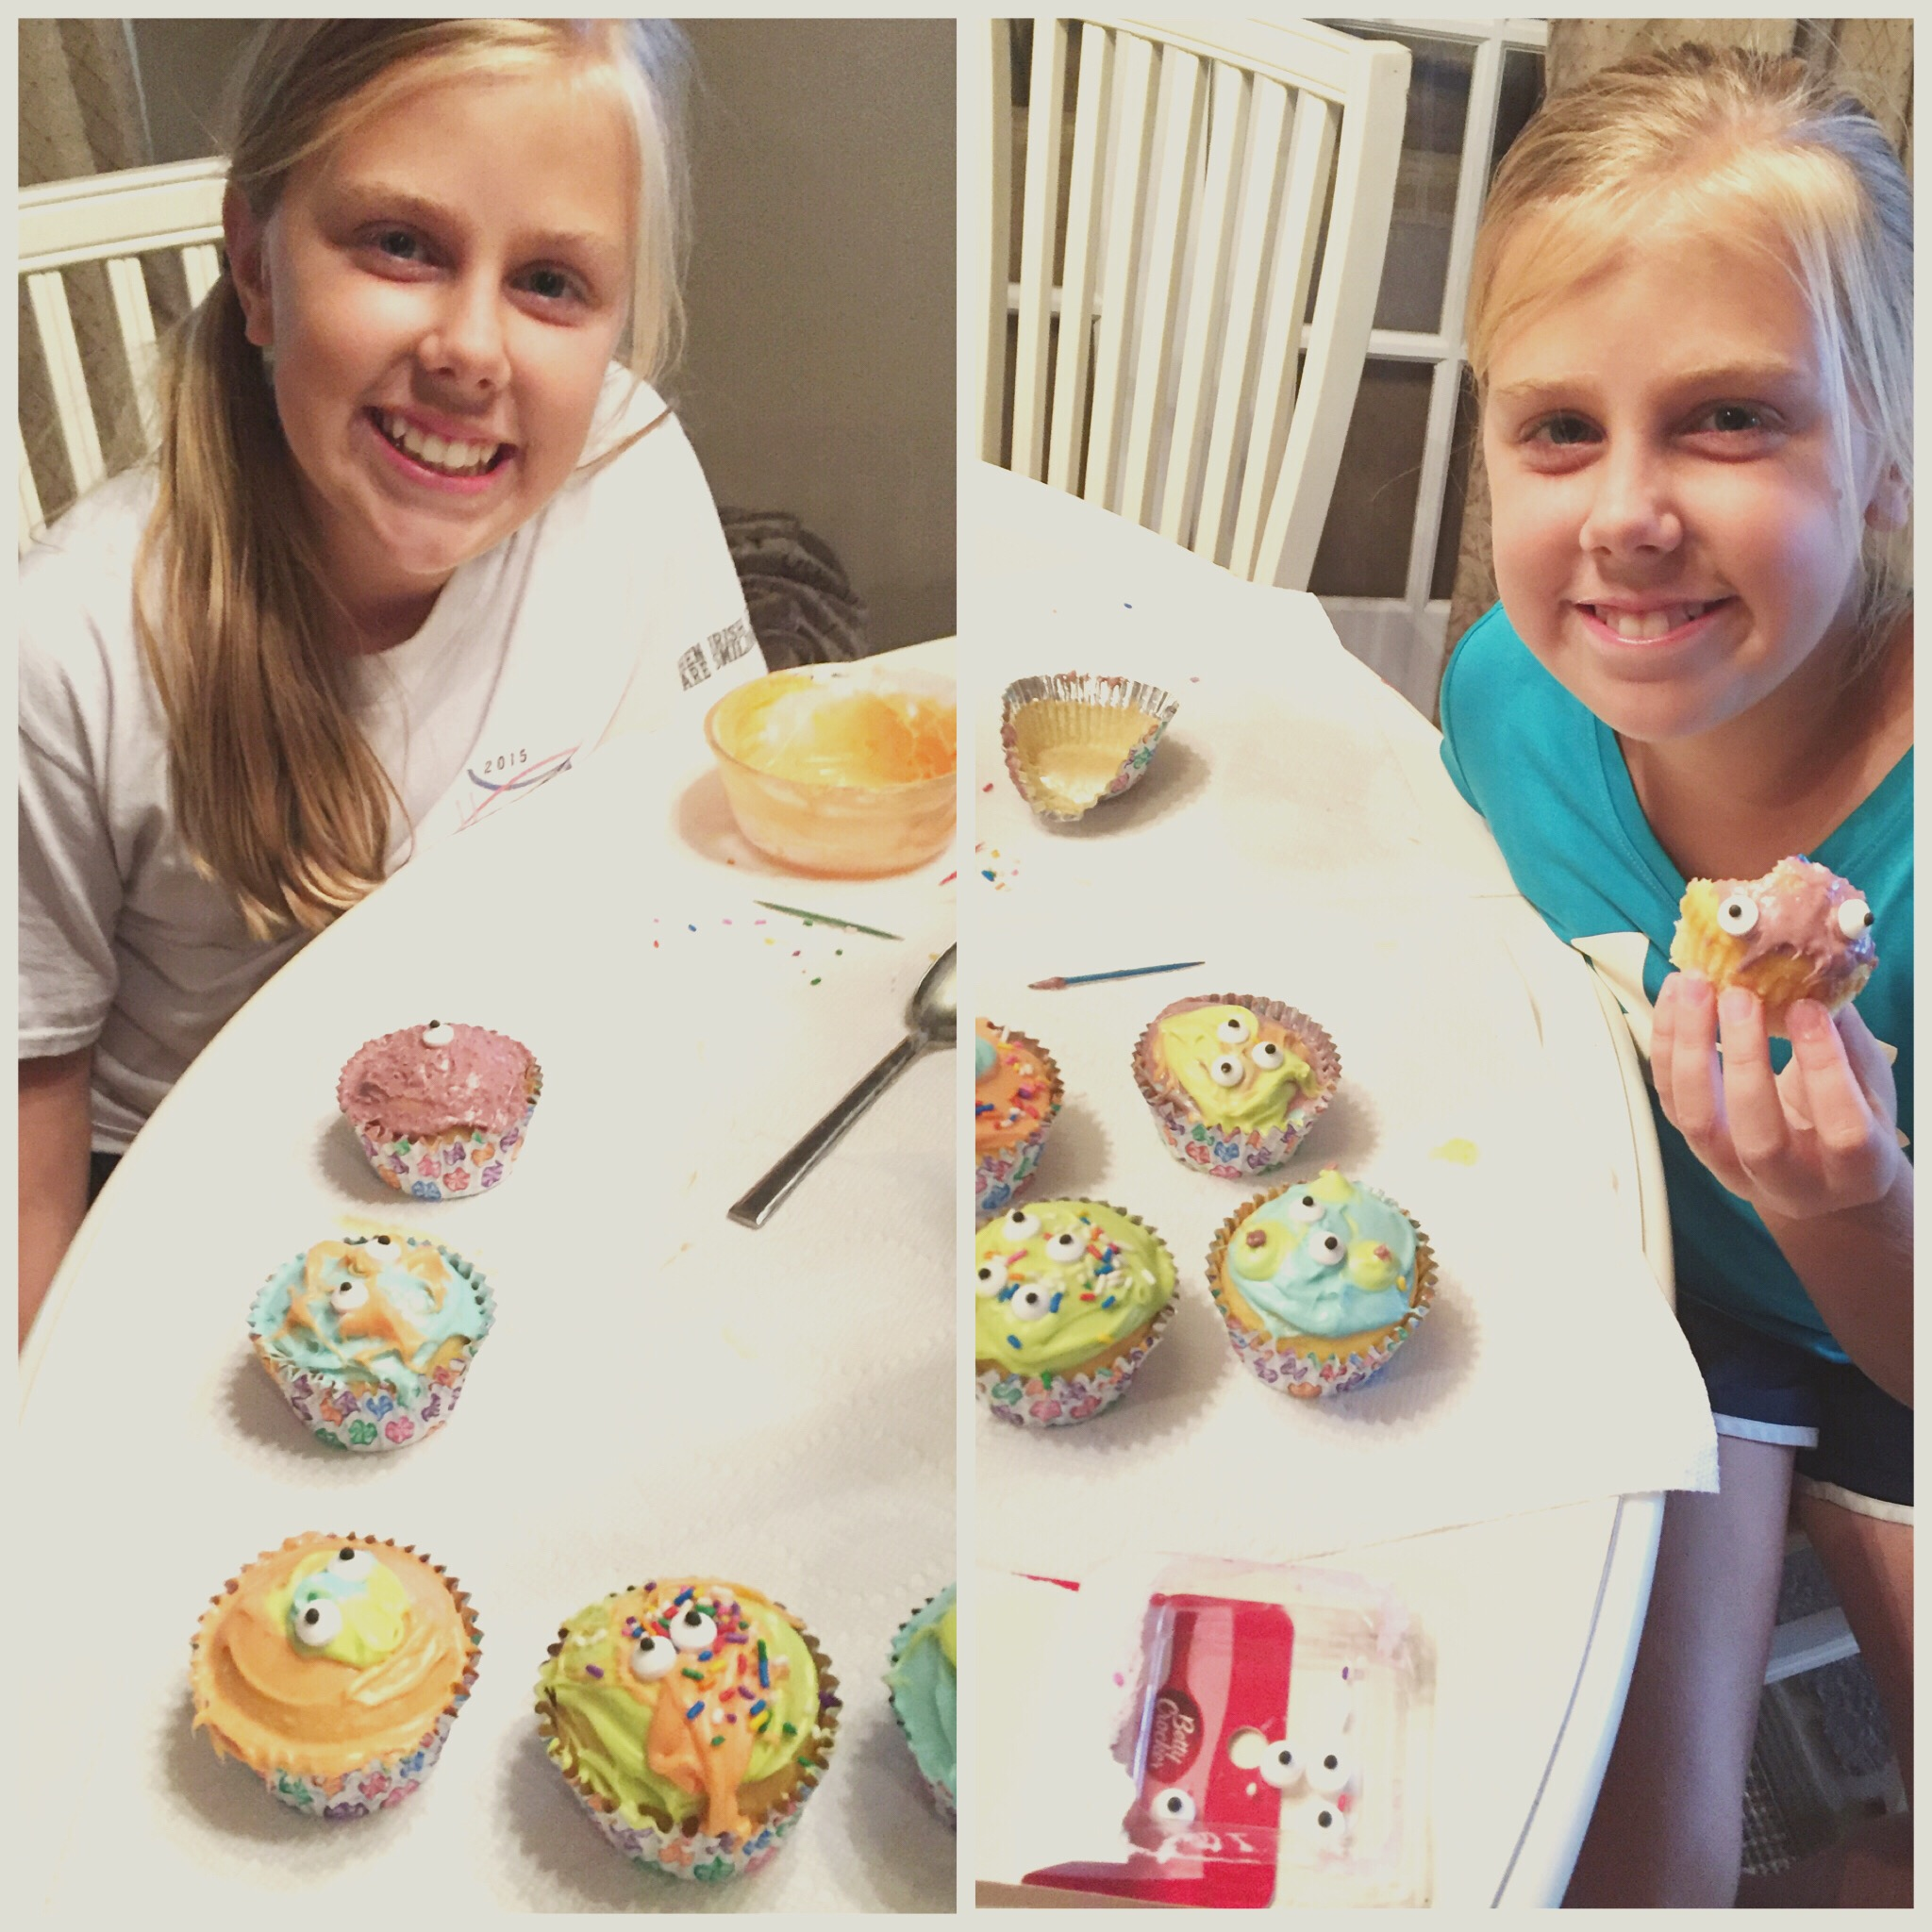 girls-with-monster-cupcakes